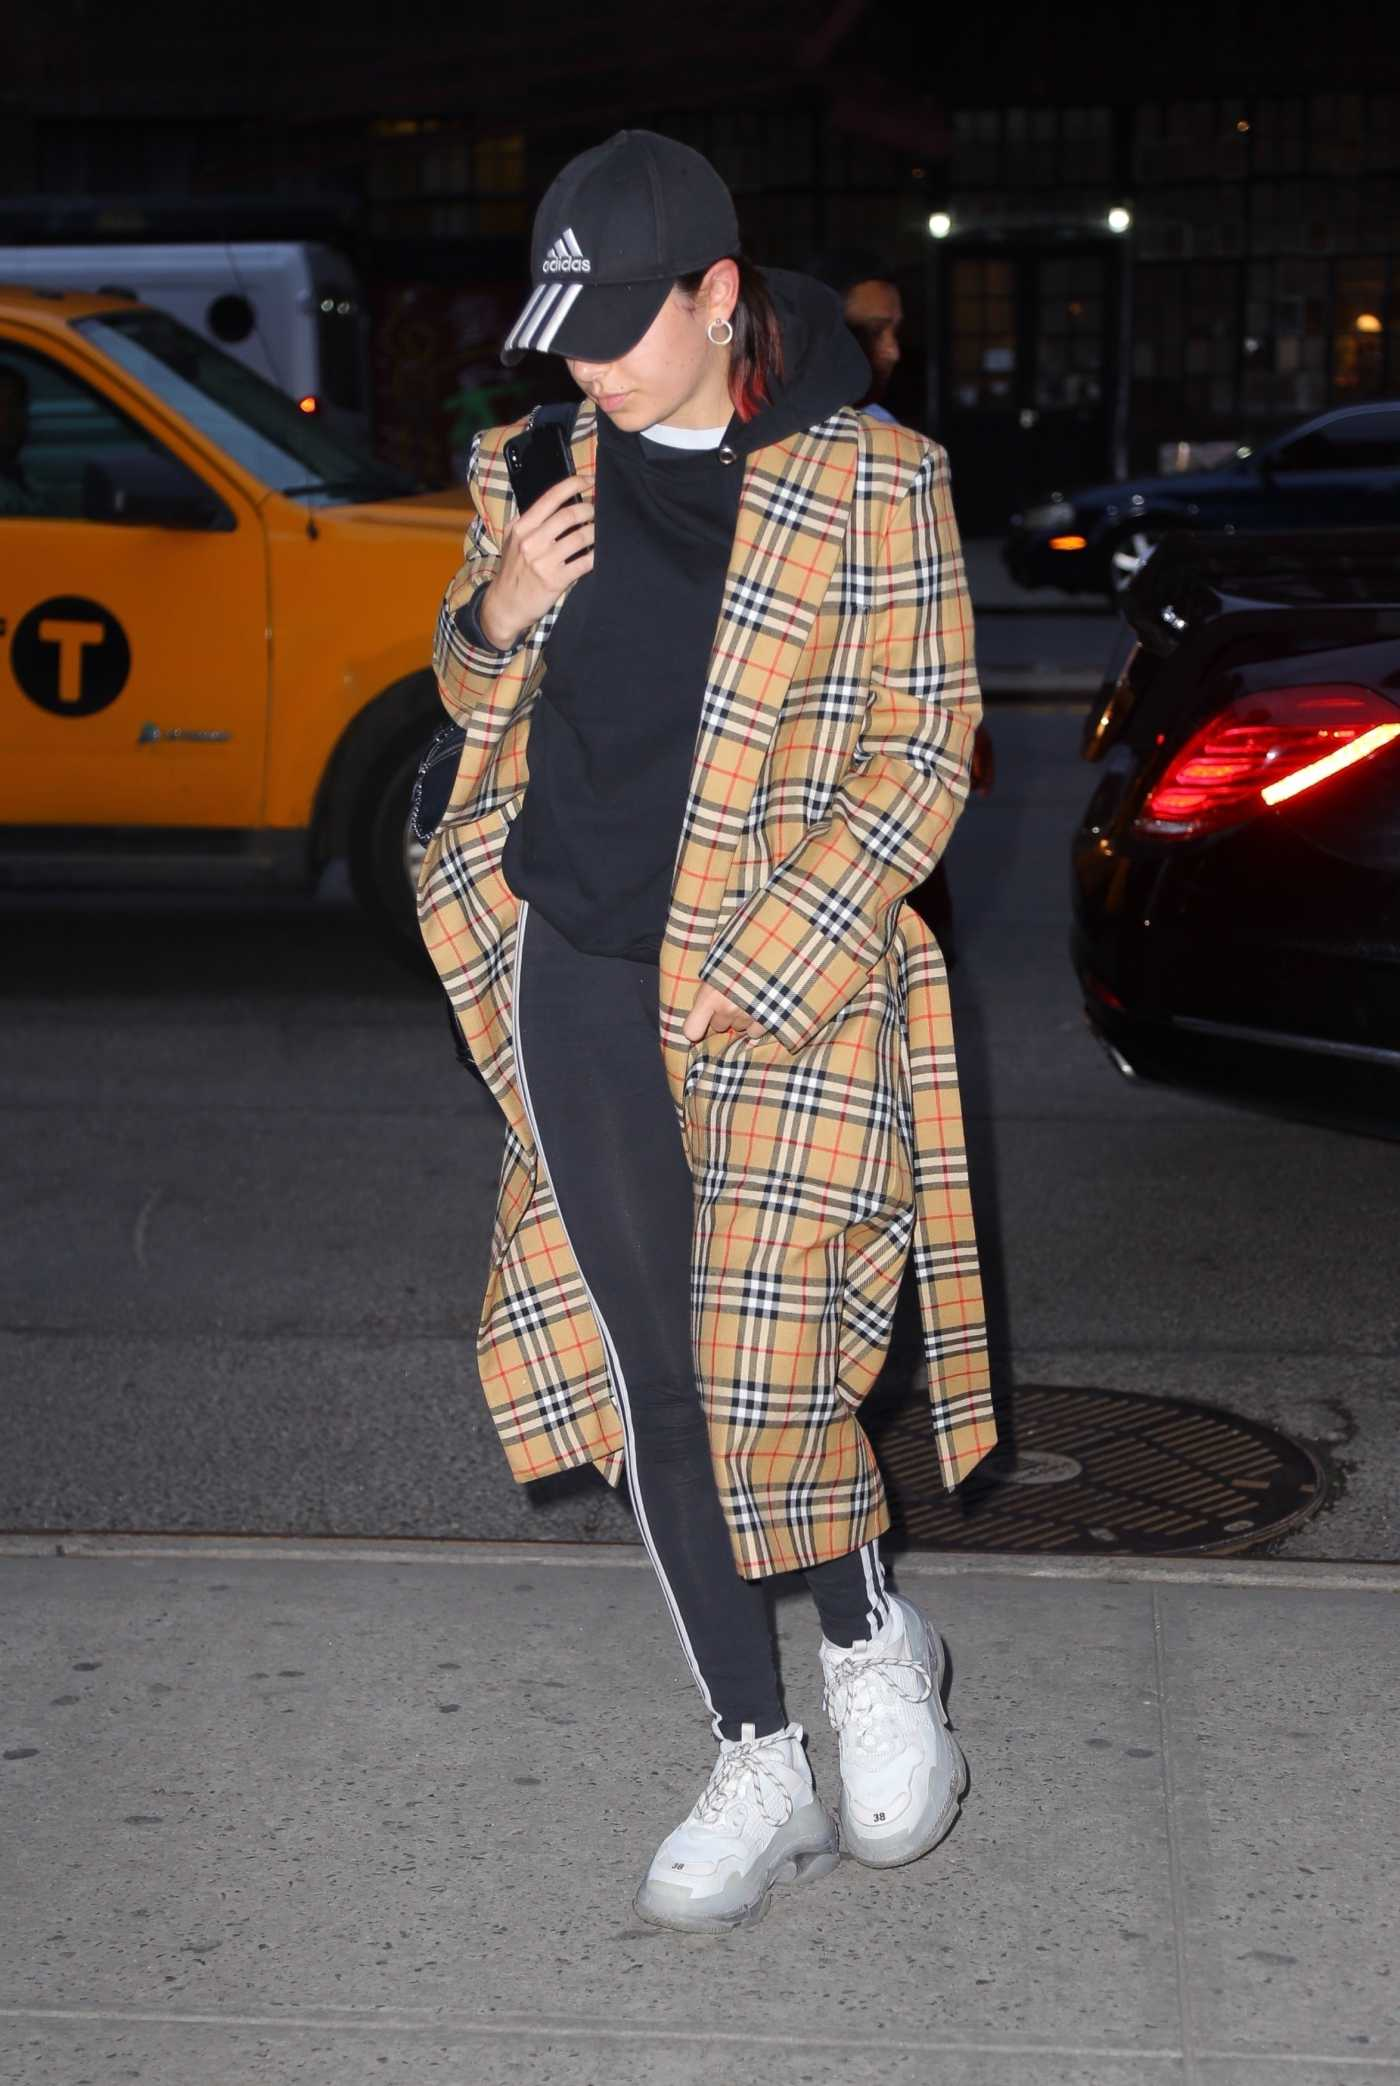 Charli XCX in a Plaid Trench Coat Arrives at the Bowery Hotel in New York City 04/29/2019